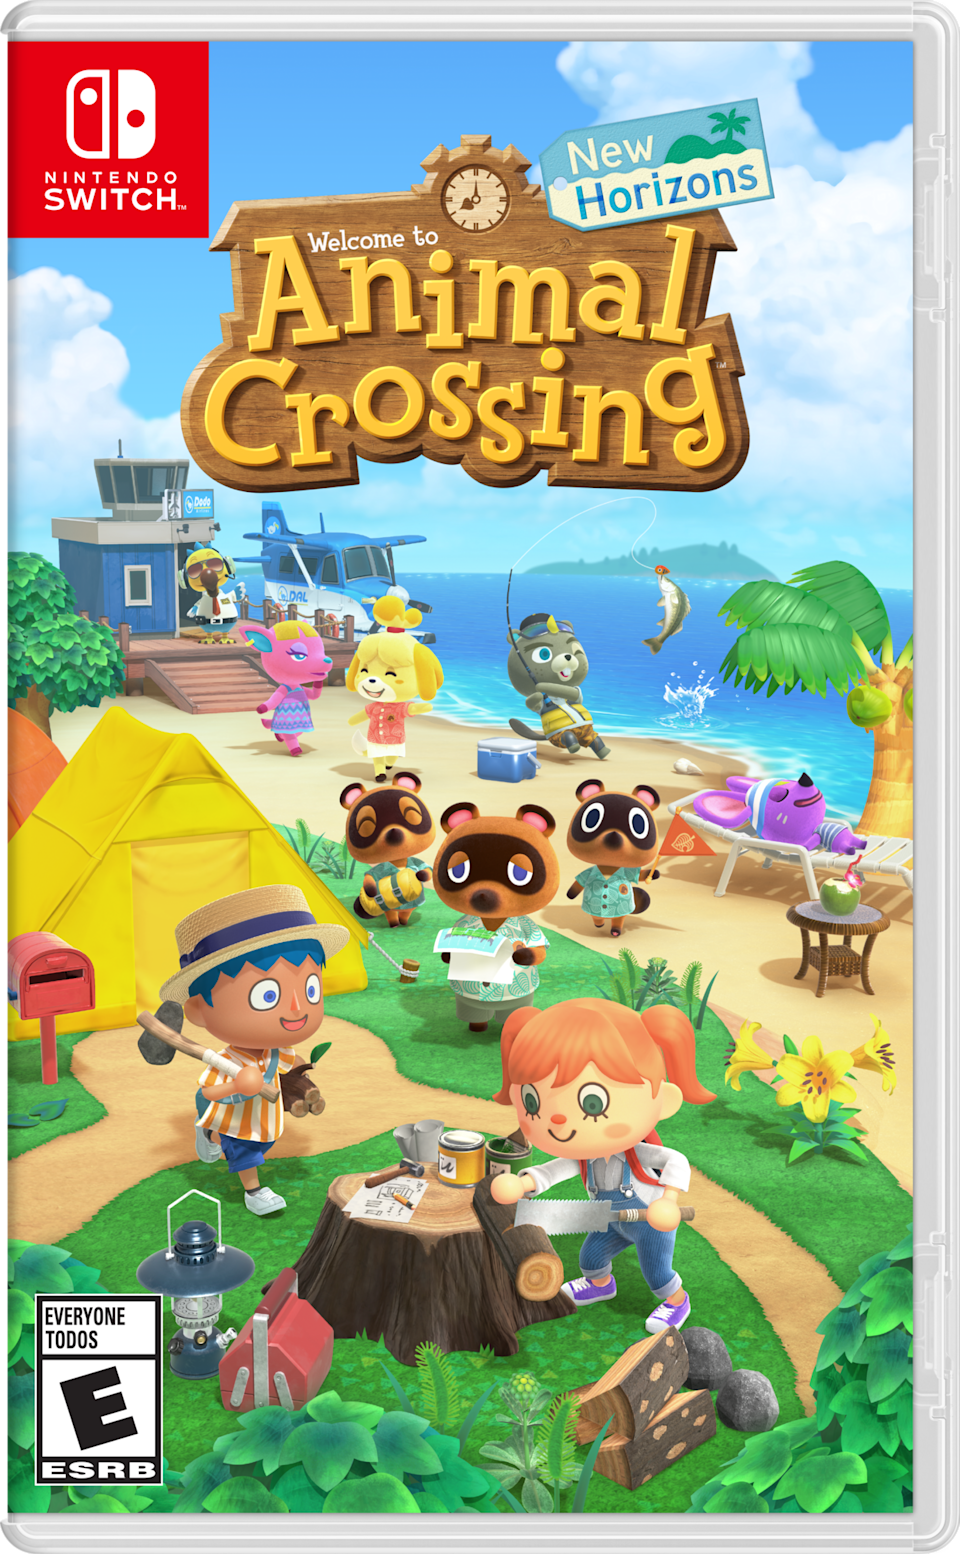 """<p><strong>Nintendo</strong></p><p>walmart.com</p><p><strong>$49.93</strong></p><p><a href=""""https://go.redirectingat.com?id=74968X1596630&url=https%3A%2F%2Fwww.walmart.com%2Fip%2F720388718&sref=https%3A%2F%2Fwww.menshealth.com%2Ftechnology-gear%2Fg35237975%2Flong-distance-relationship-gifts%2F"""" rel=""""nofollow noopener"""" target=""""_blank"""" data-ylk=""""slk:BUY IT HERE"""" class=""""link rapid-noclick-resp"""">BUY IT HERE</a></p><p>And, you know, get them the game, too. It makes for a much more well-rounded gifting experience. No time to waste when we've got games to game. </p>"""